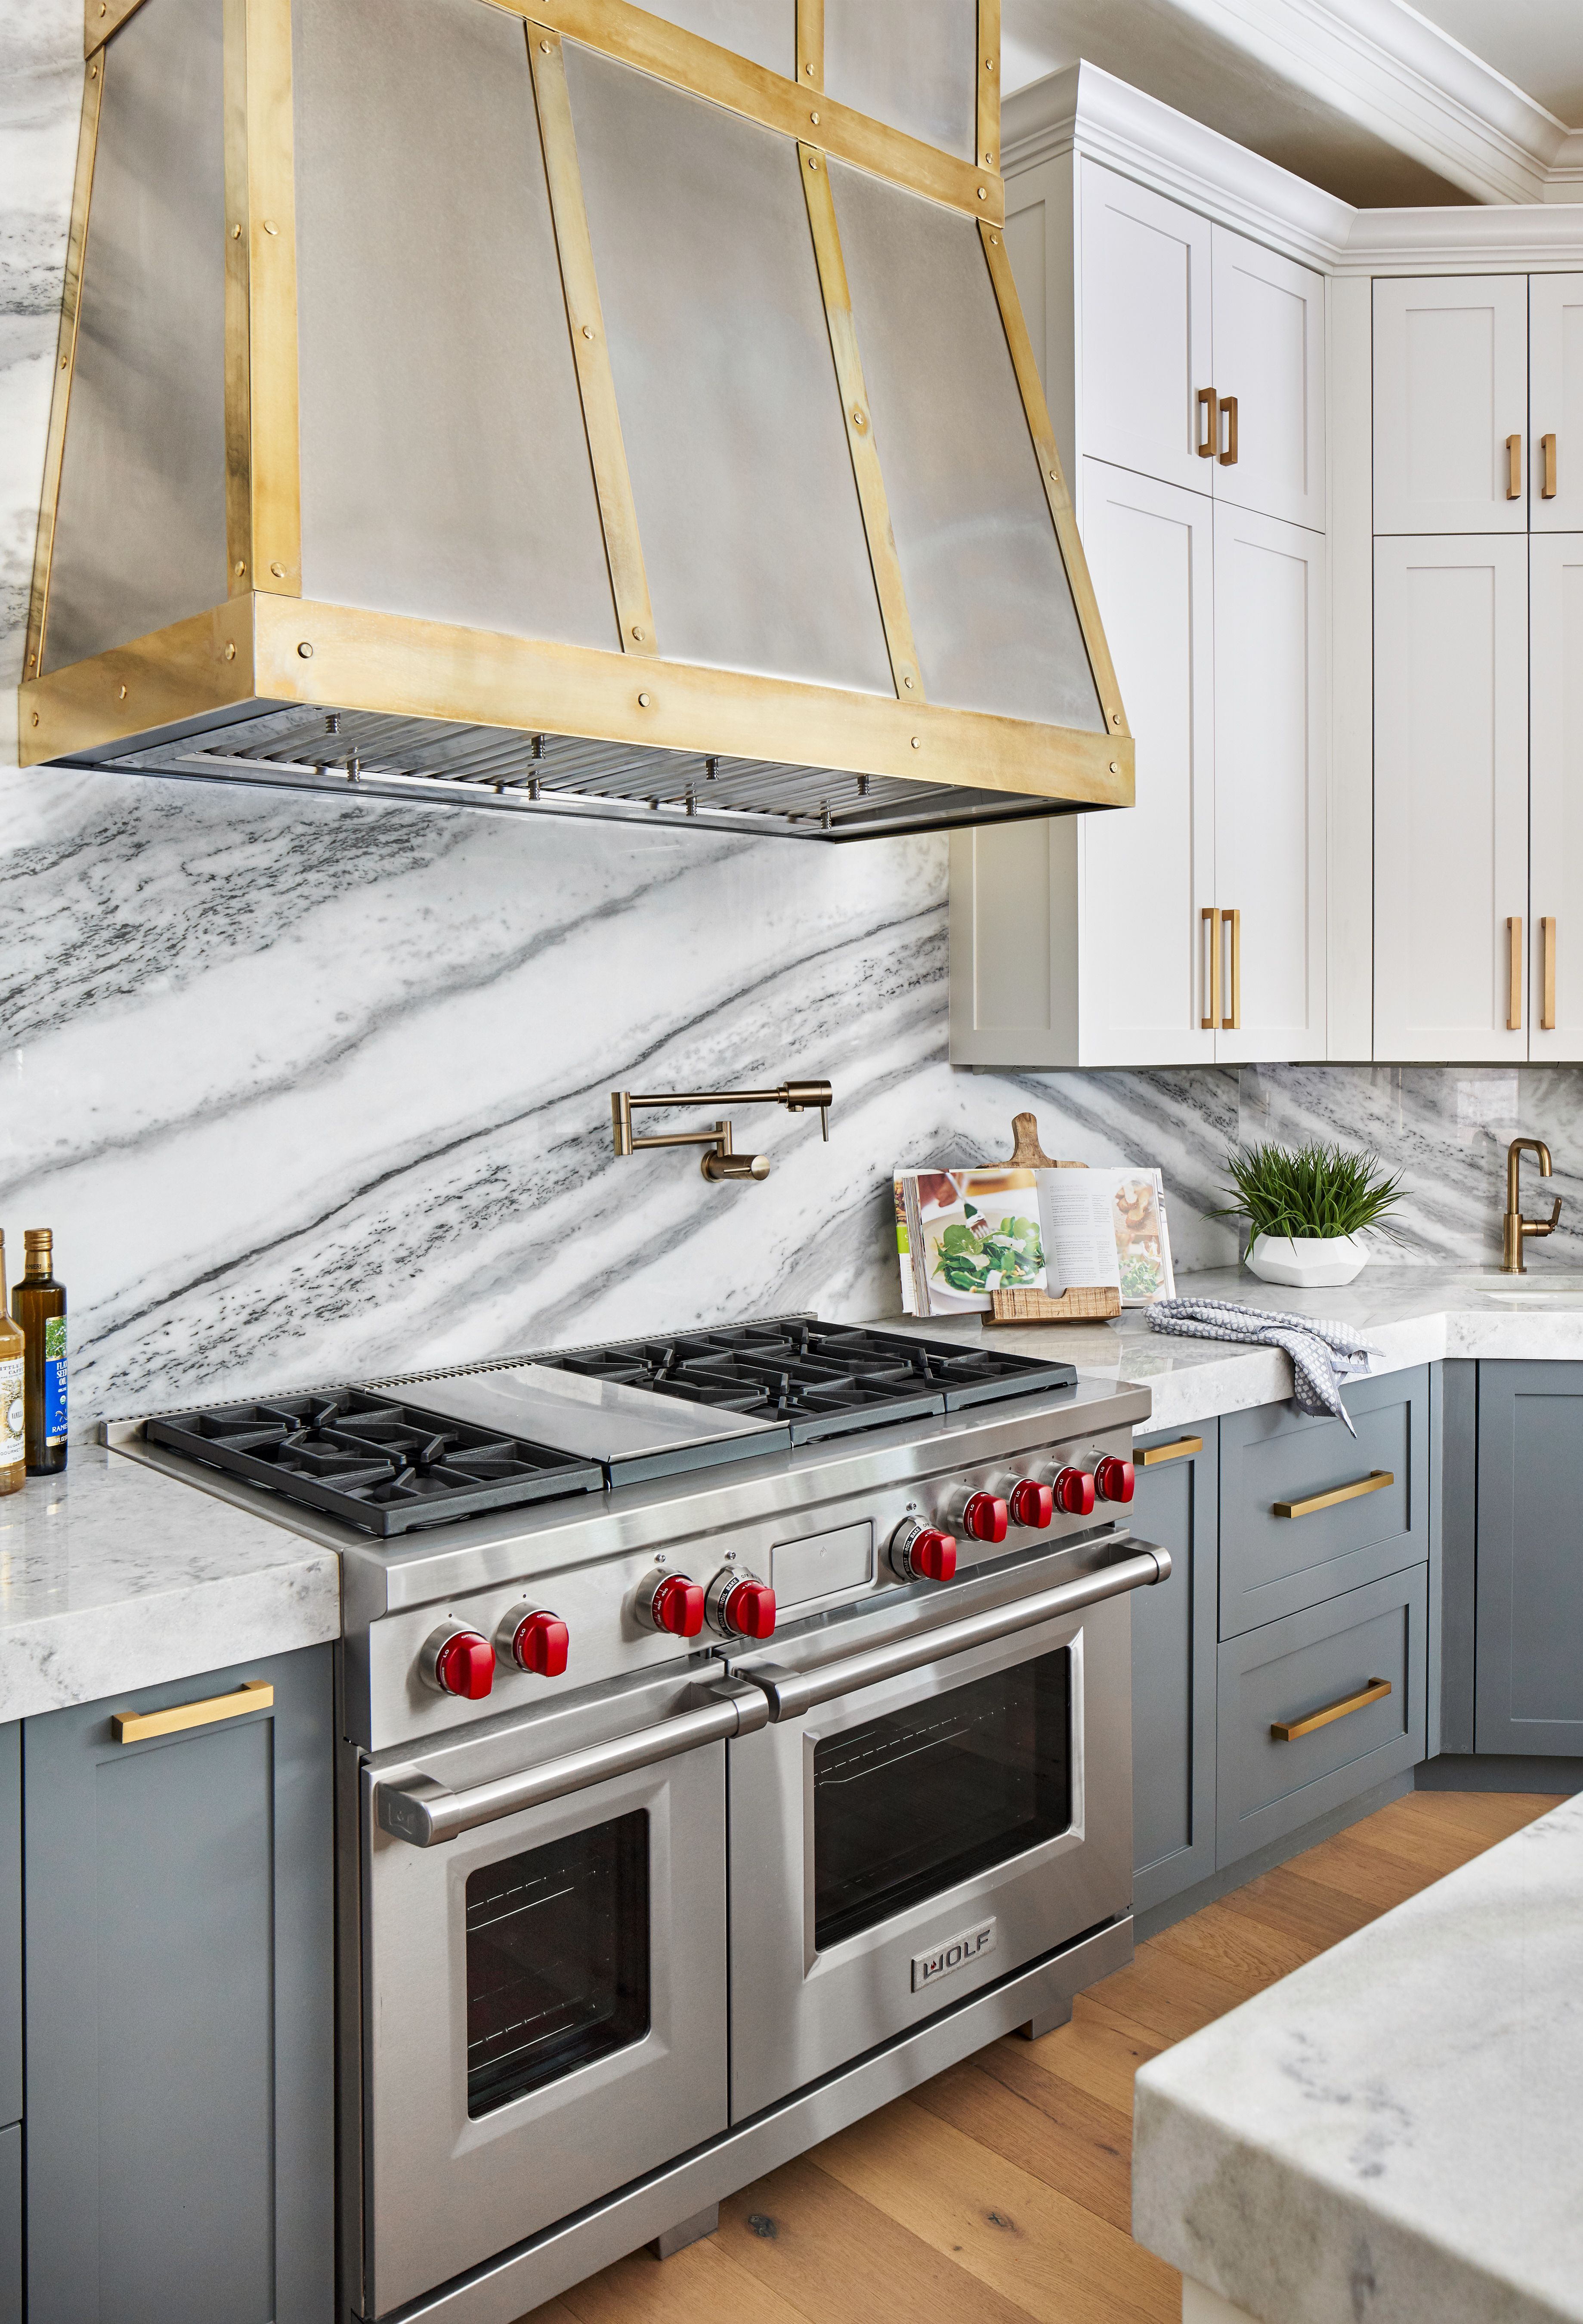 Custom Stainless Range Hood With Antique Gold Strapping And Marble Backsplash Marble Countertops Kitchen Kitchen Hoods Stainless Range Hood